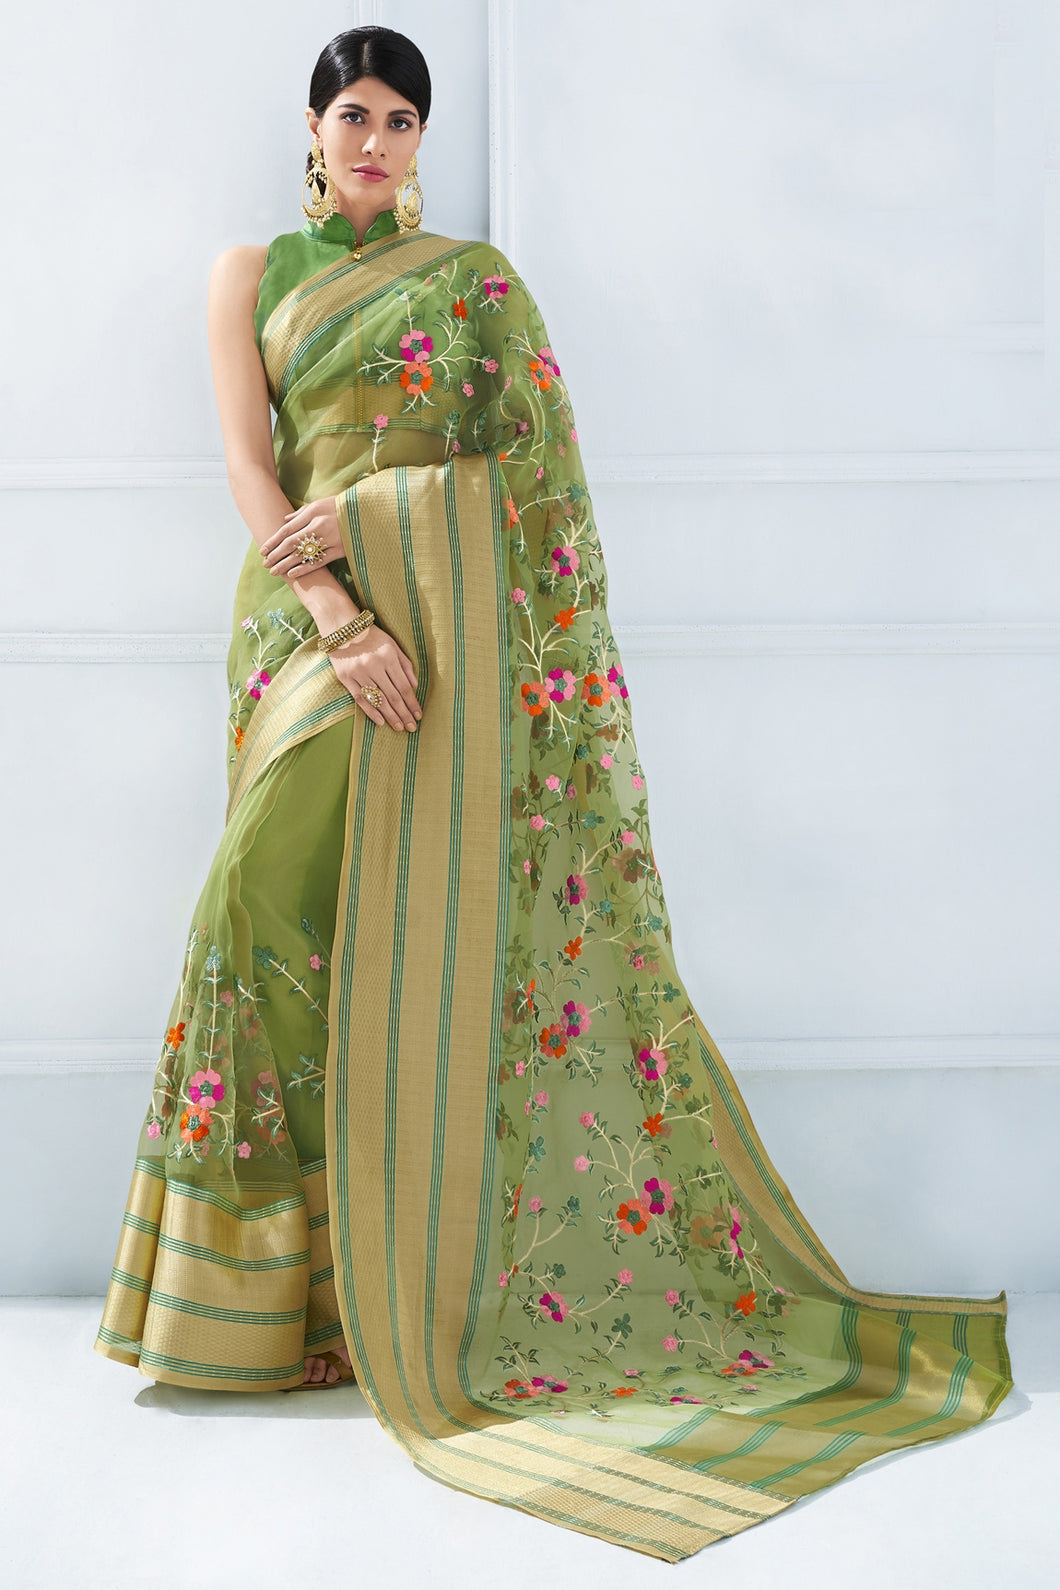 Bhelpuri Olive Green Organza Silk Embroidered Designer Party Wear Saree with Blouse Piece